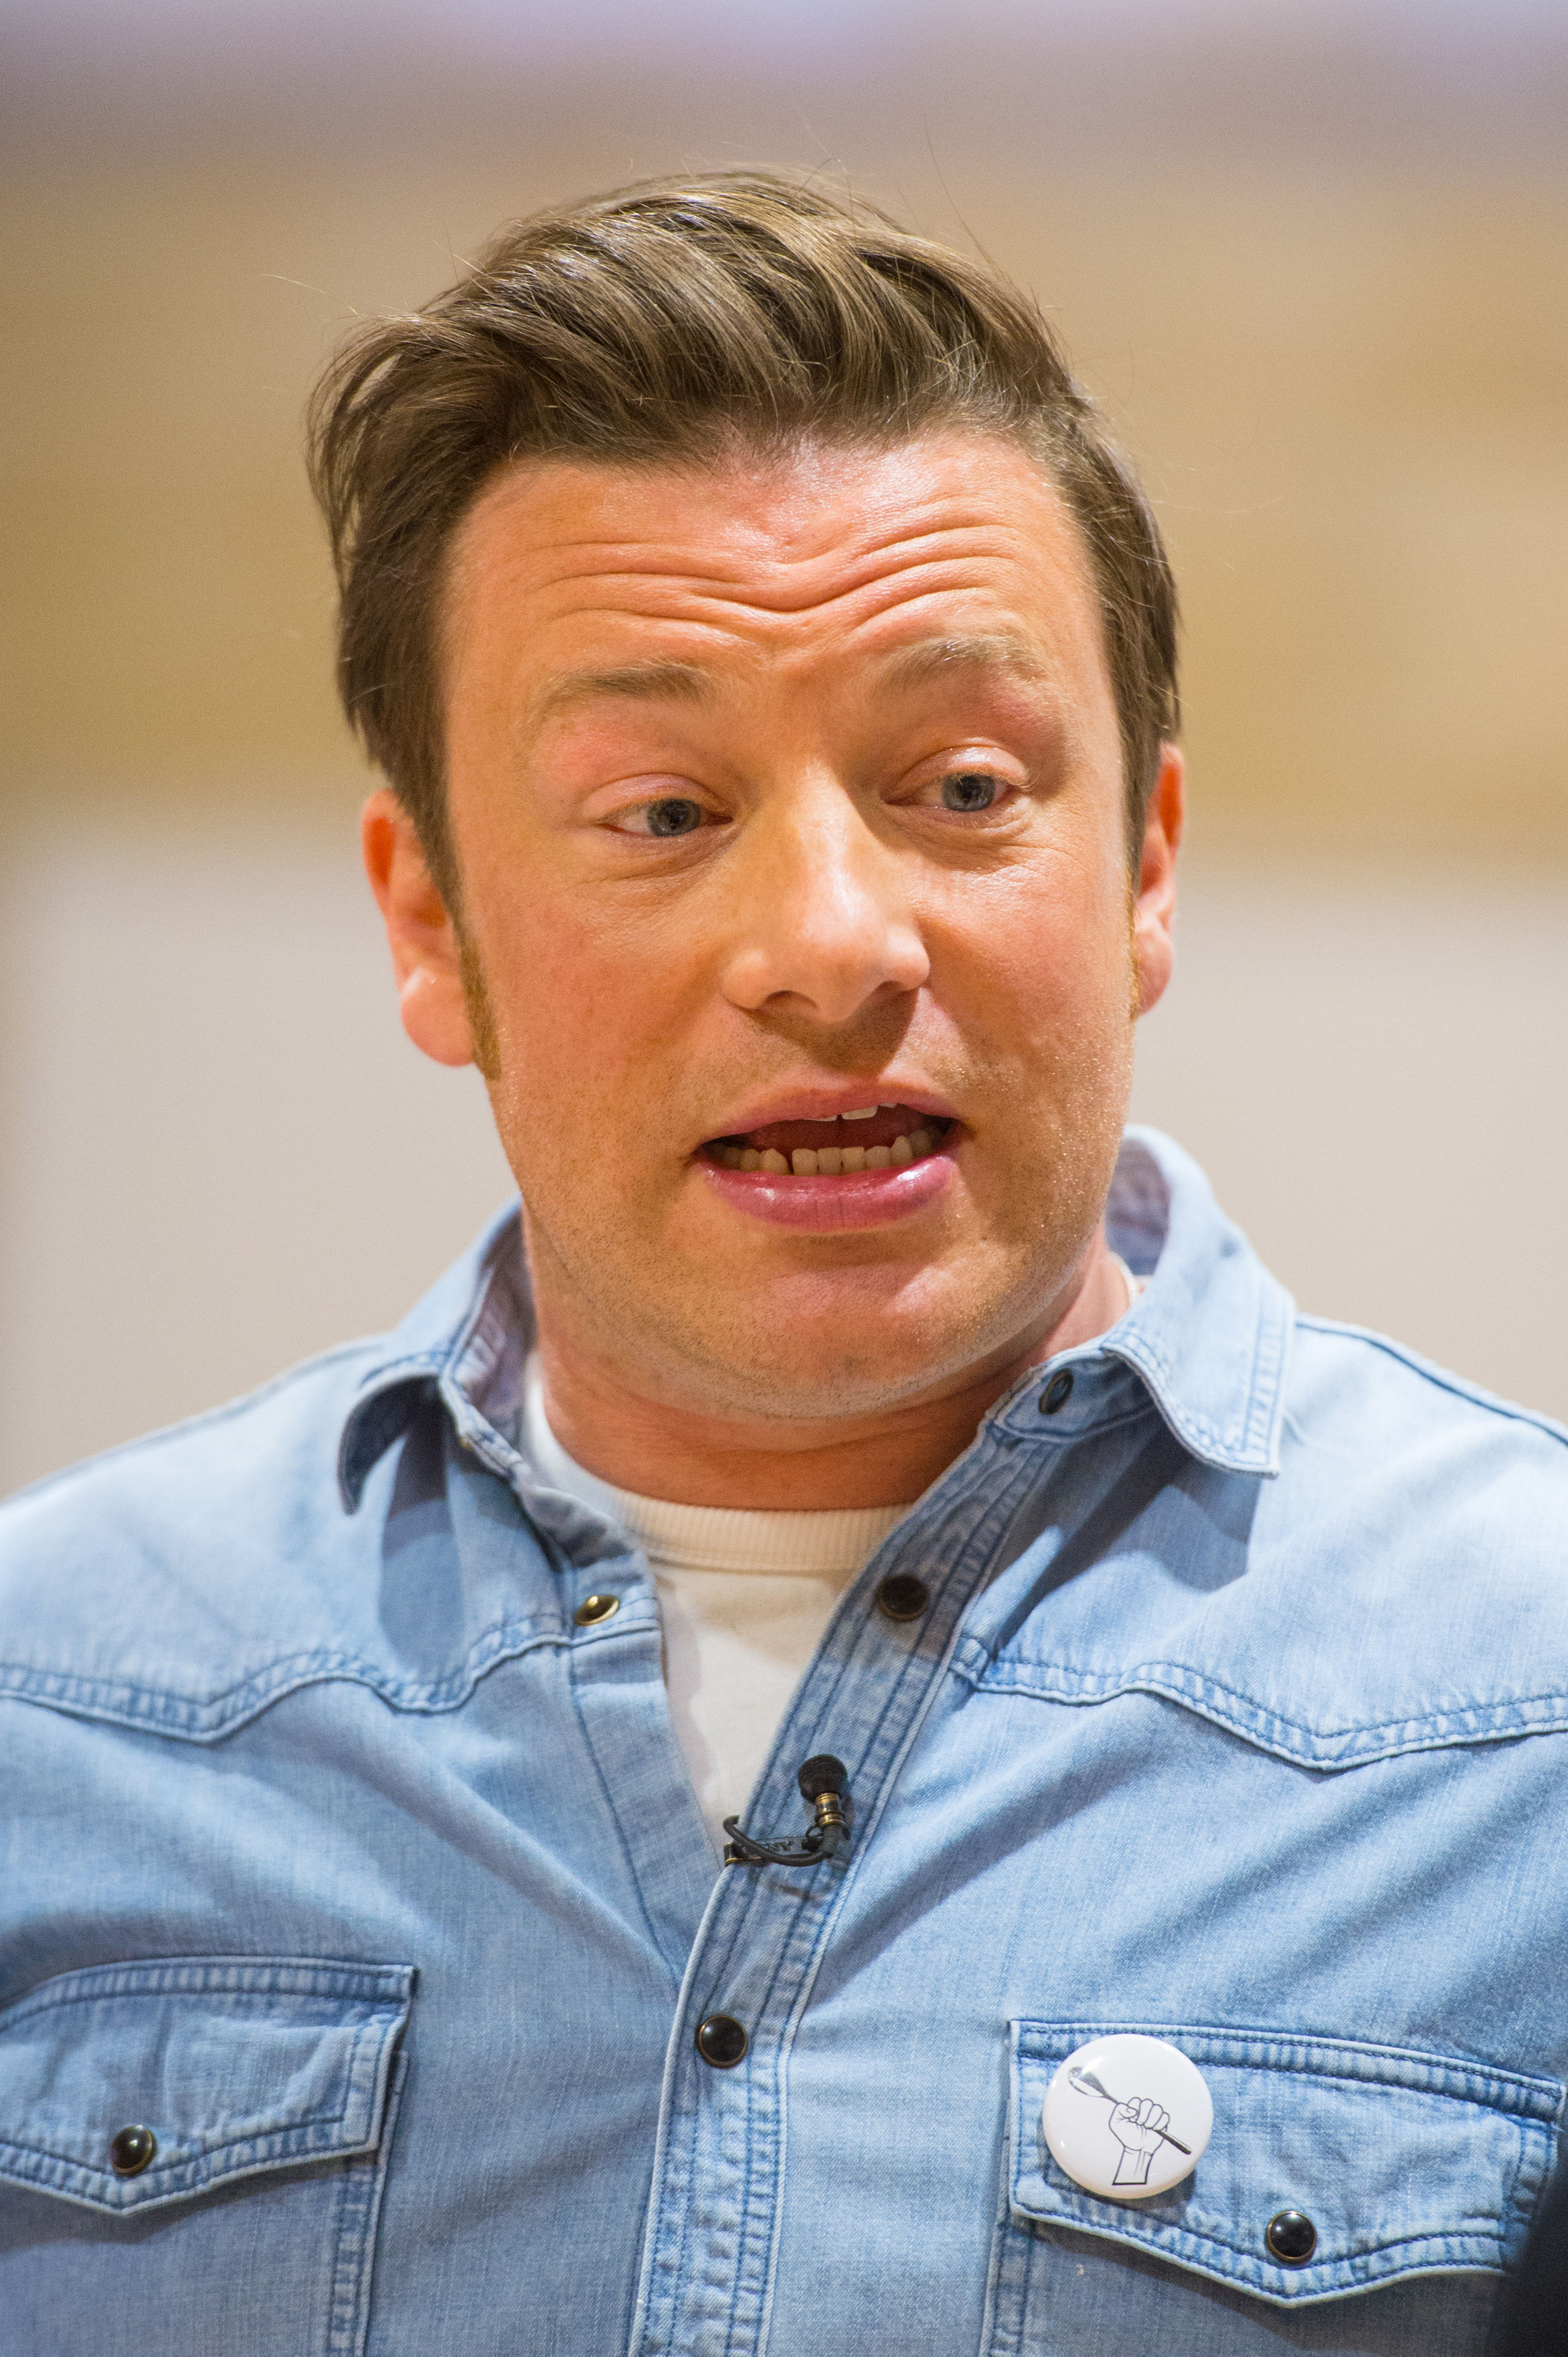 Time to keep Jamie Oliver's plans on track